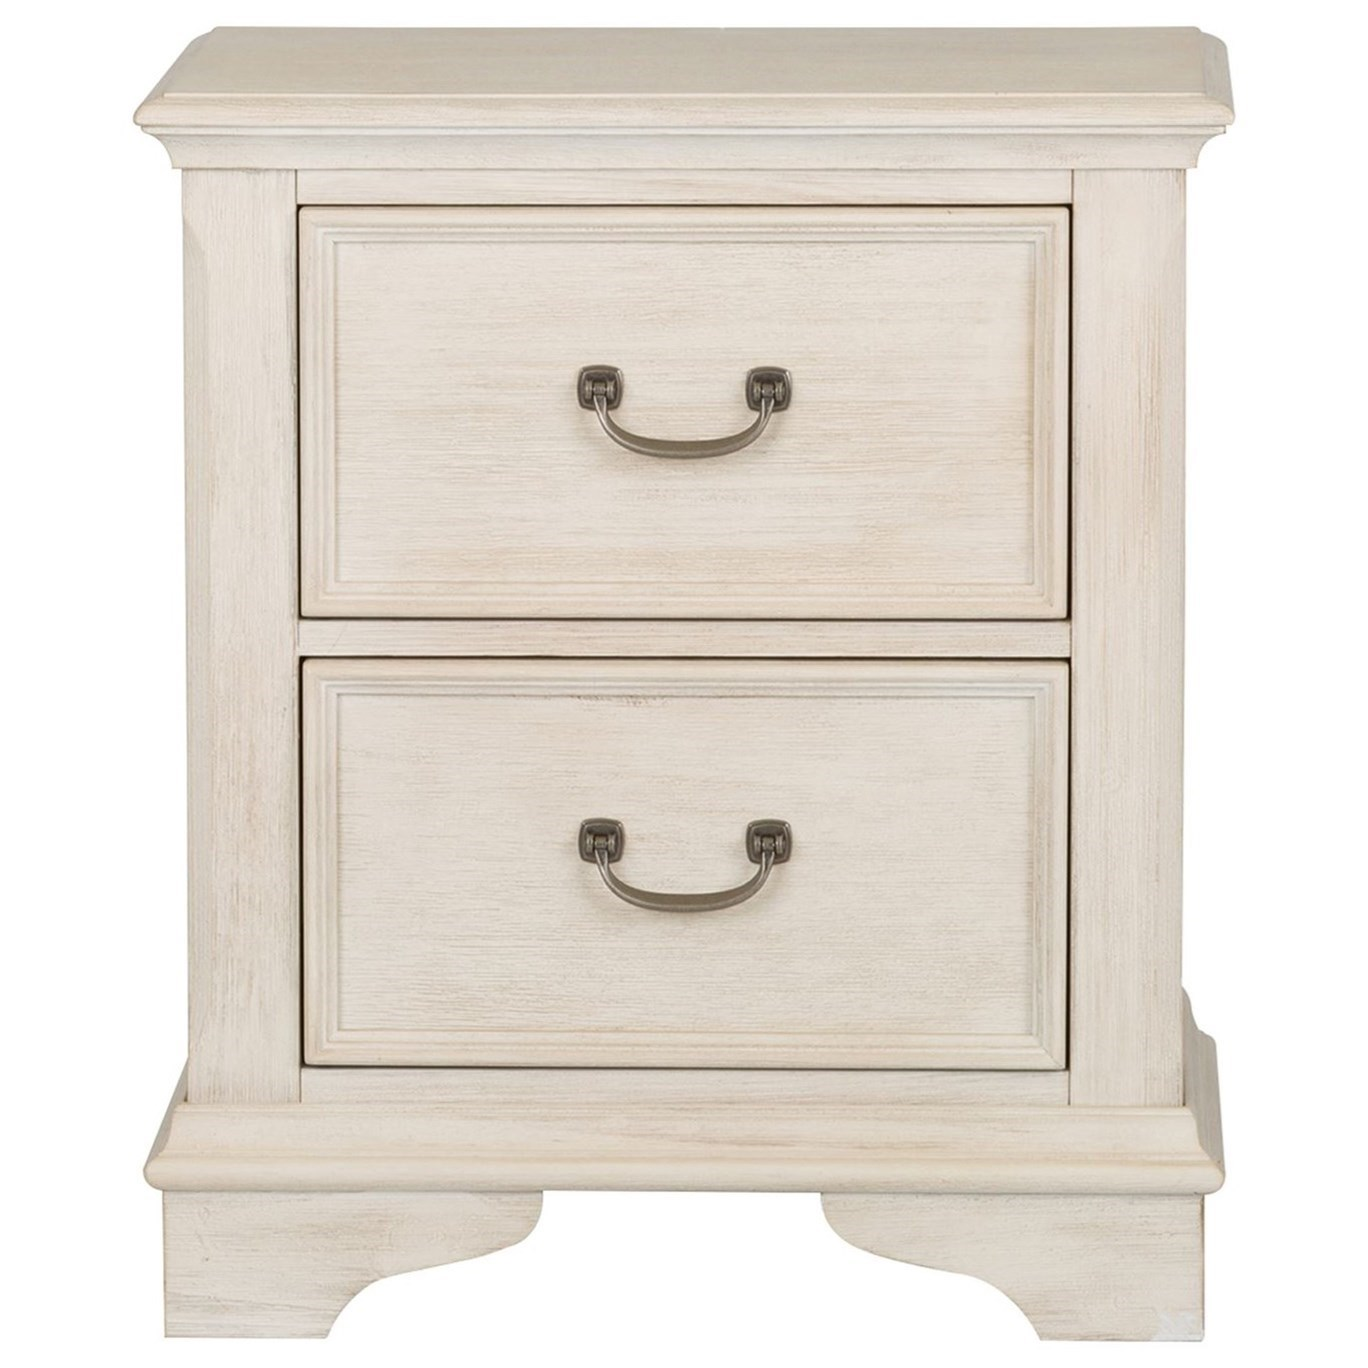 Bayside Bedroom 2 Drawer Night Stand by Libby at Walker's Furniture